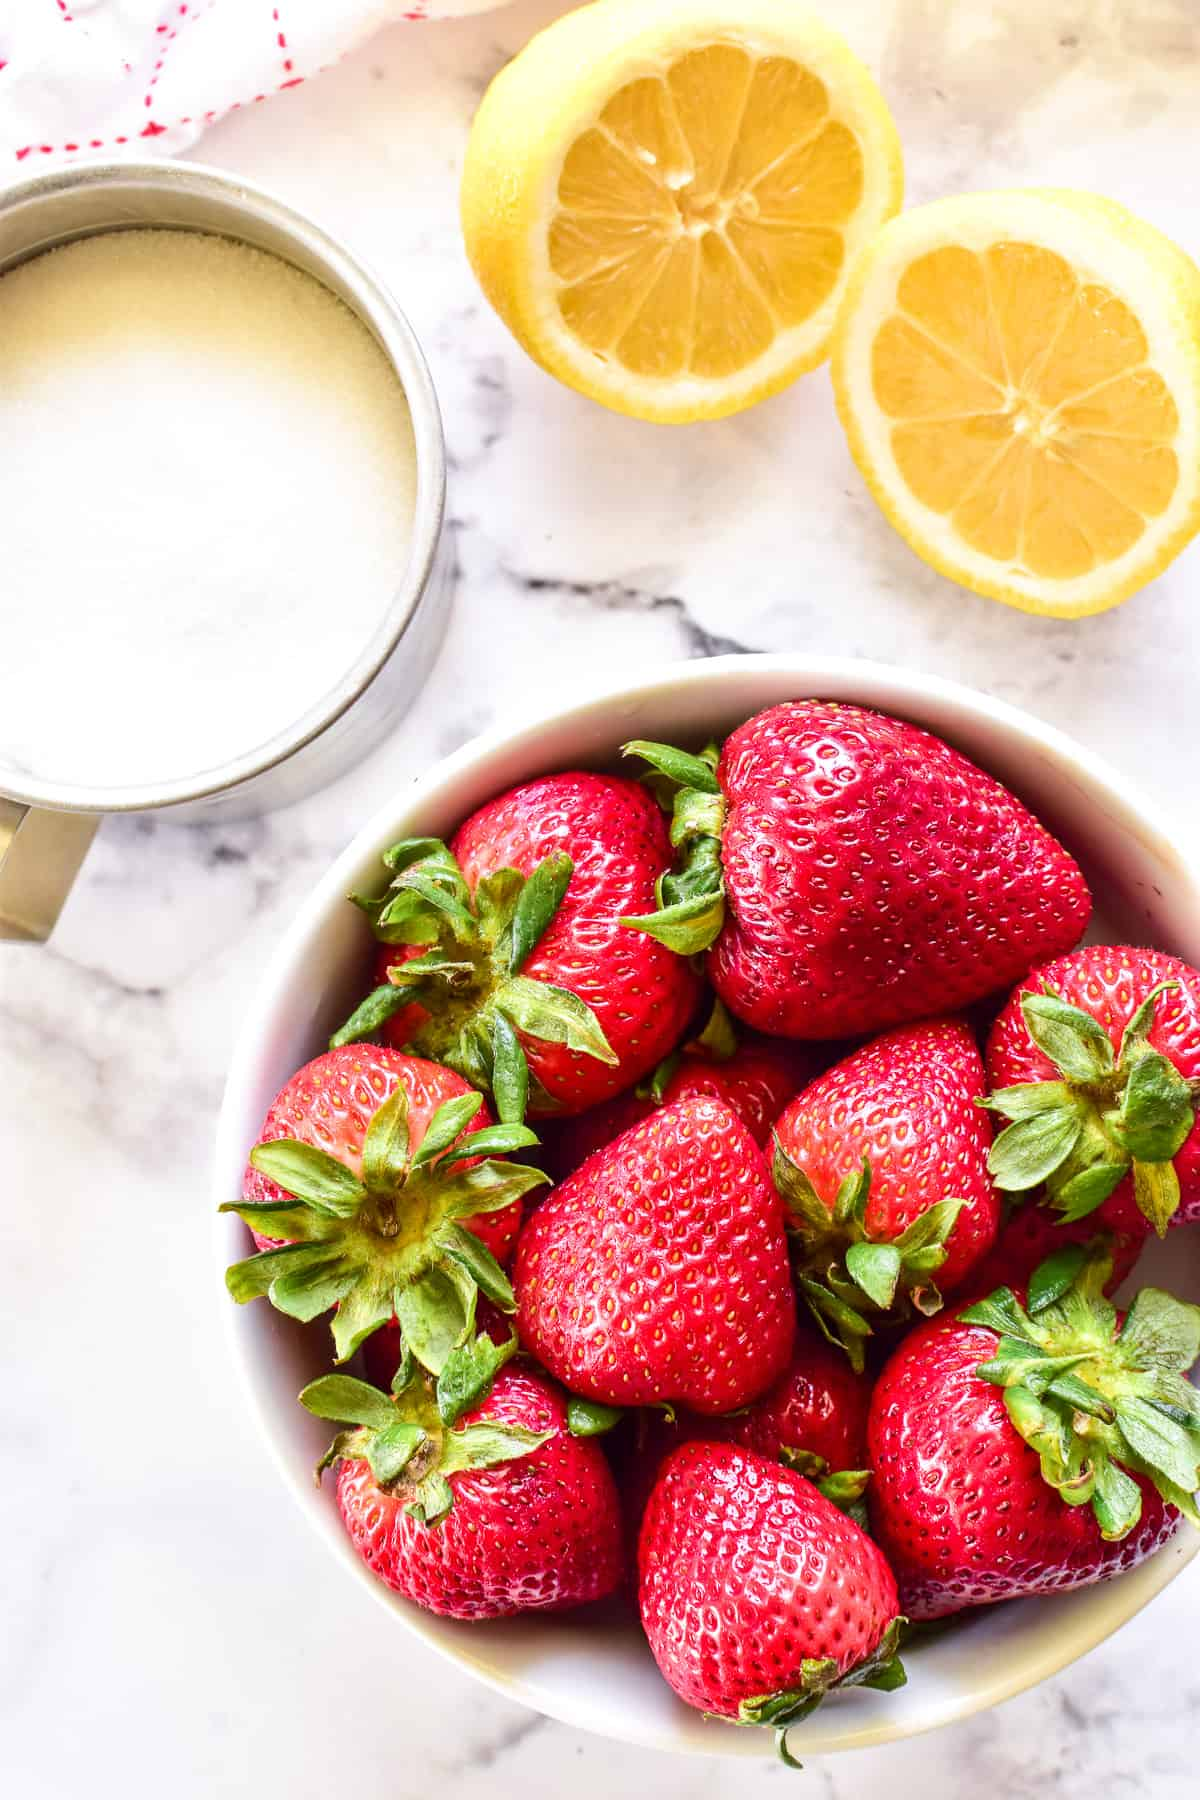 Bowl of strawberries with sugar and lemons